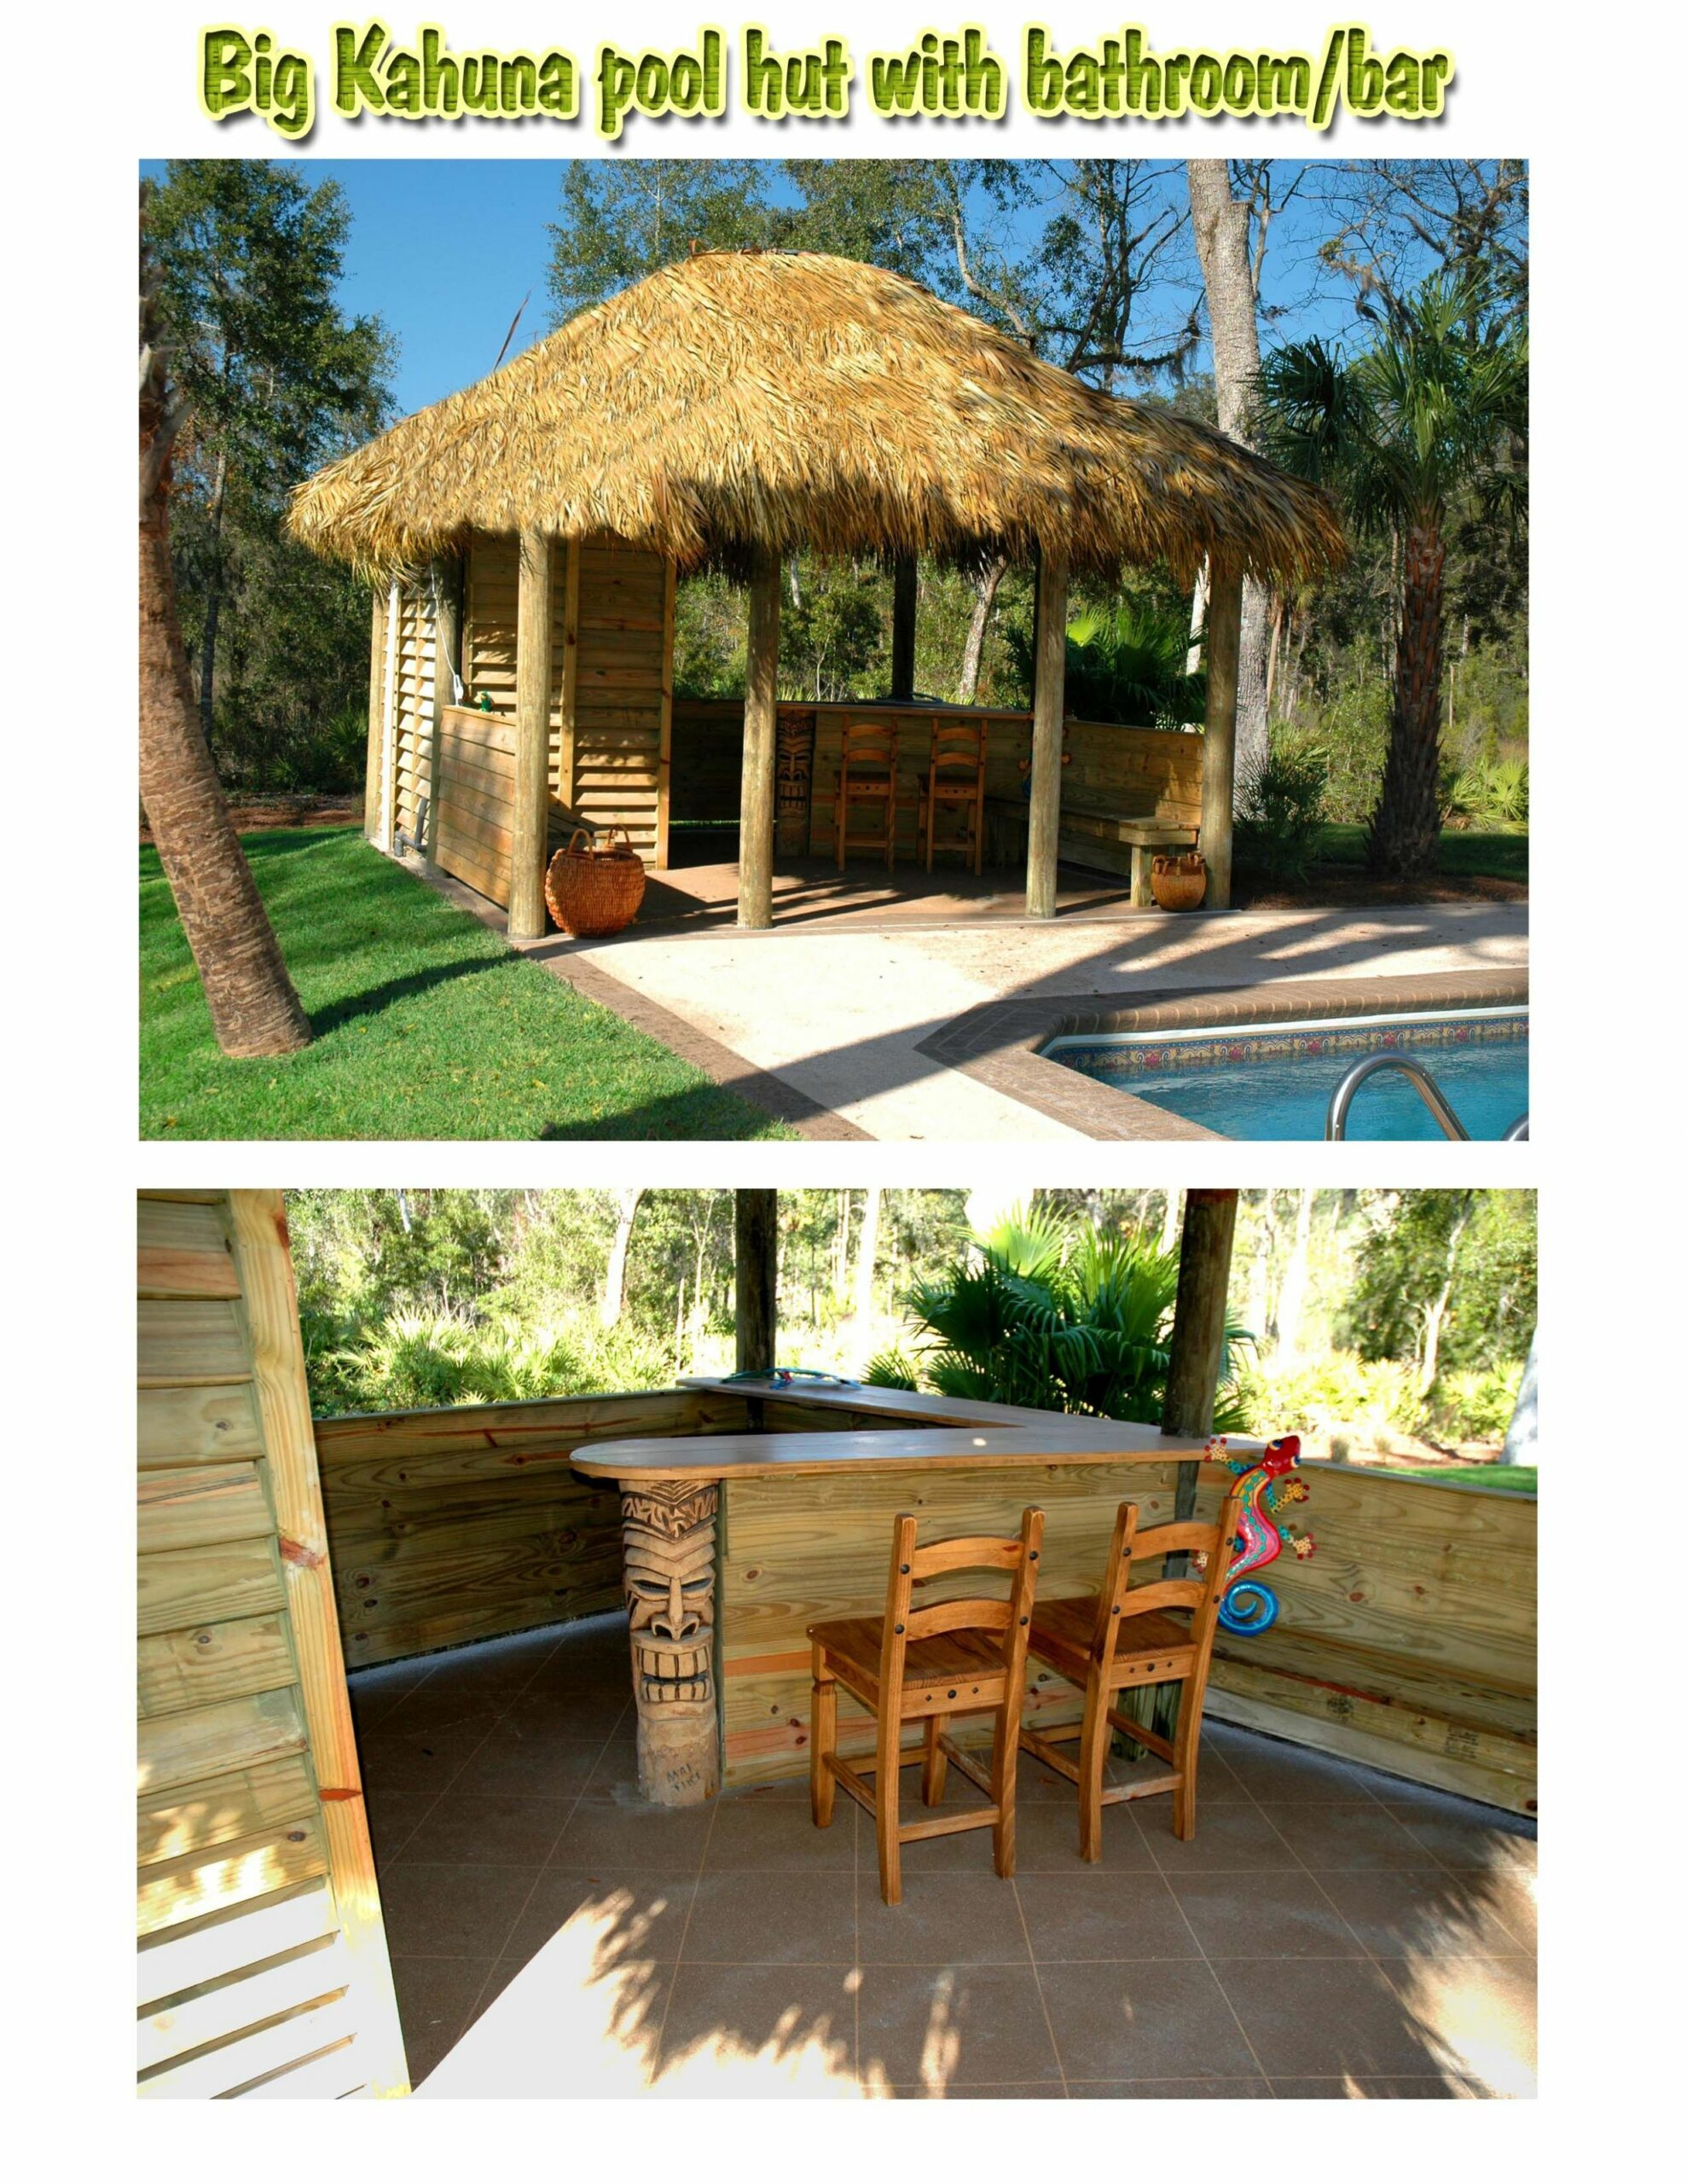 I really need a Tiki hut | Tiki hut, Backyard patio designs ..